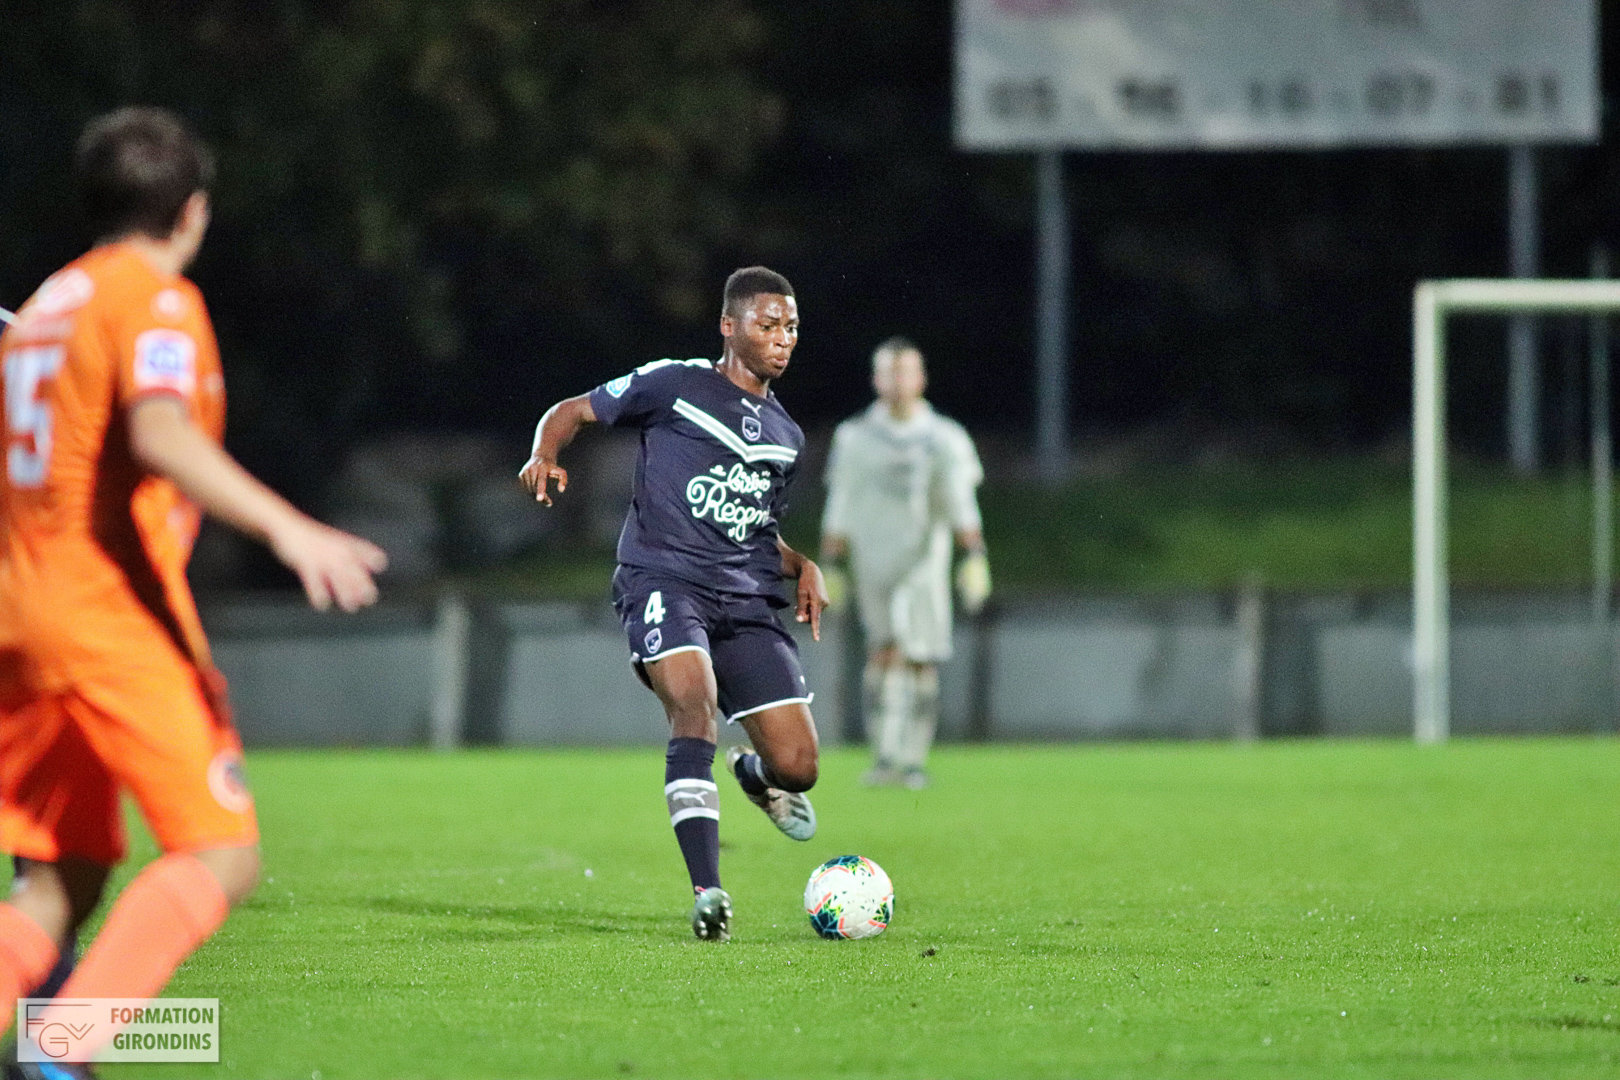 Cfa Girondins : Loïc Bessilé - « On le vivait forcément mal » - Formation Girondins